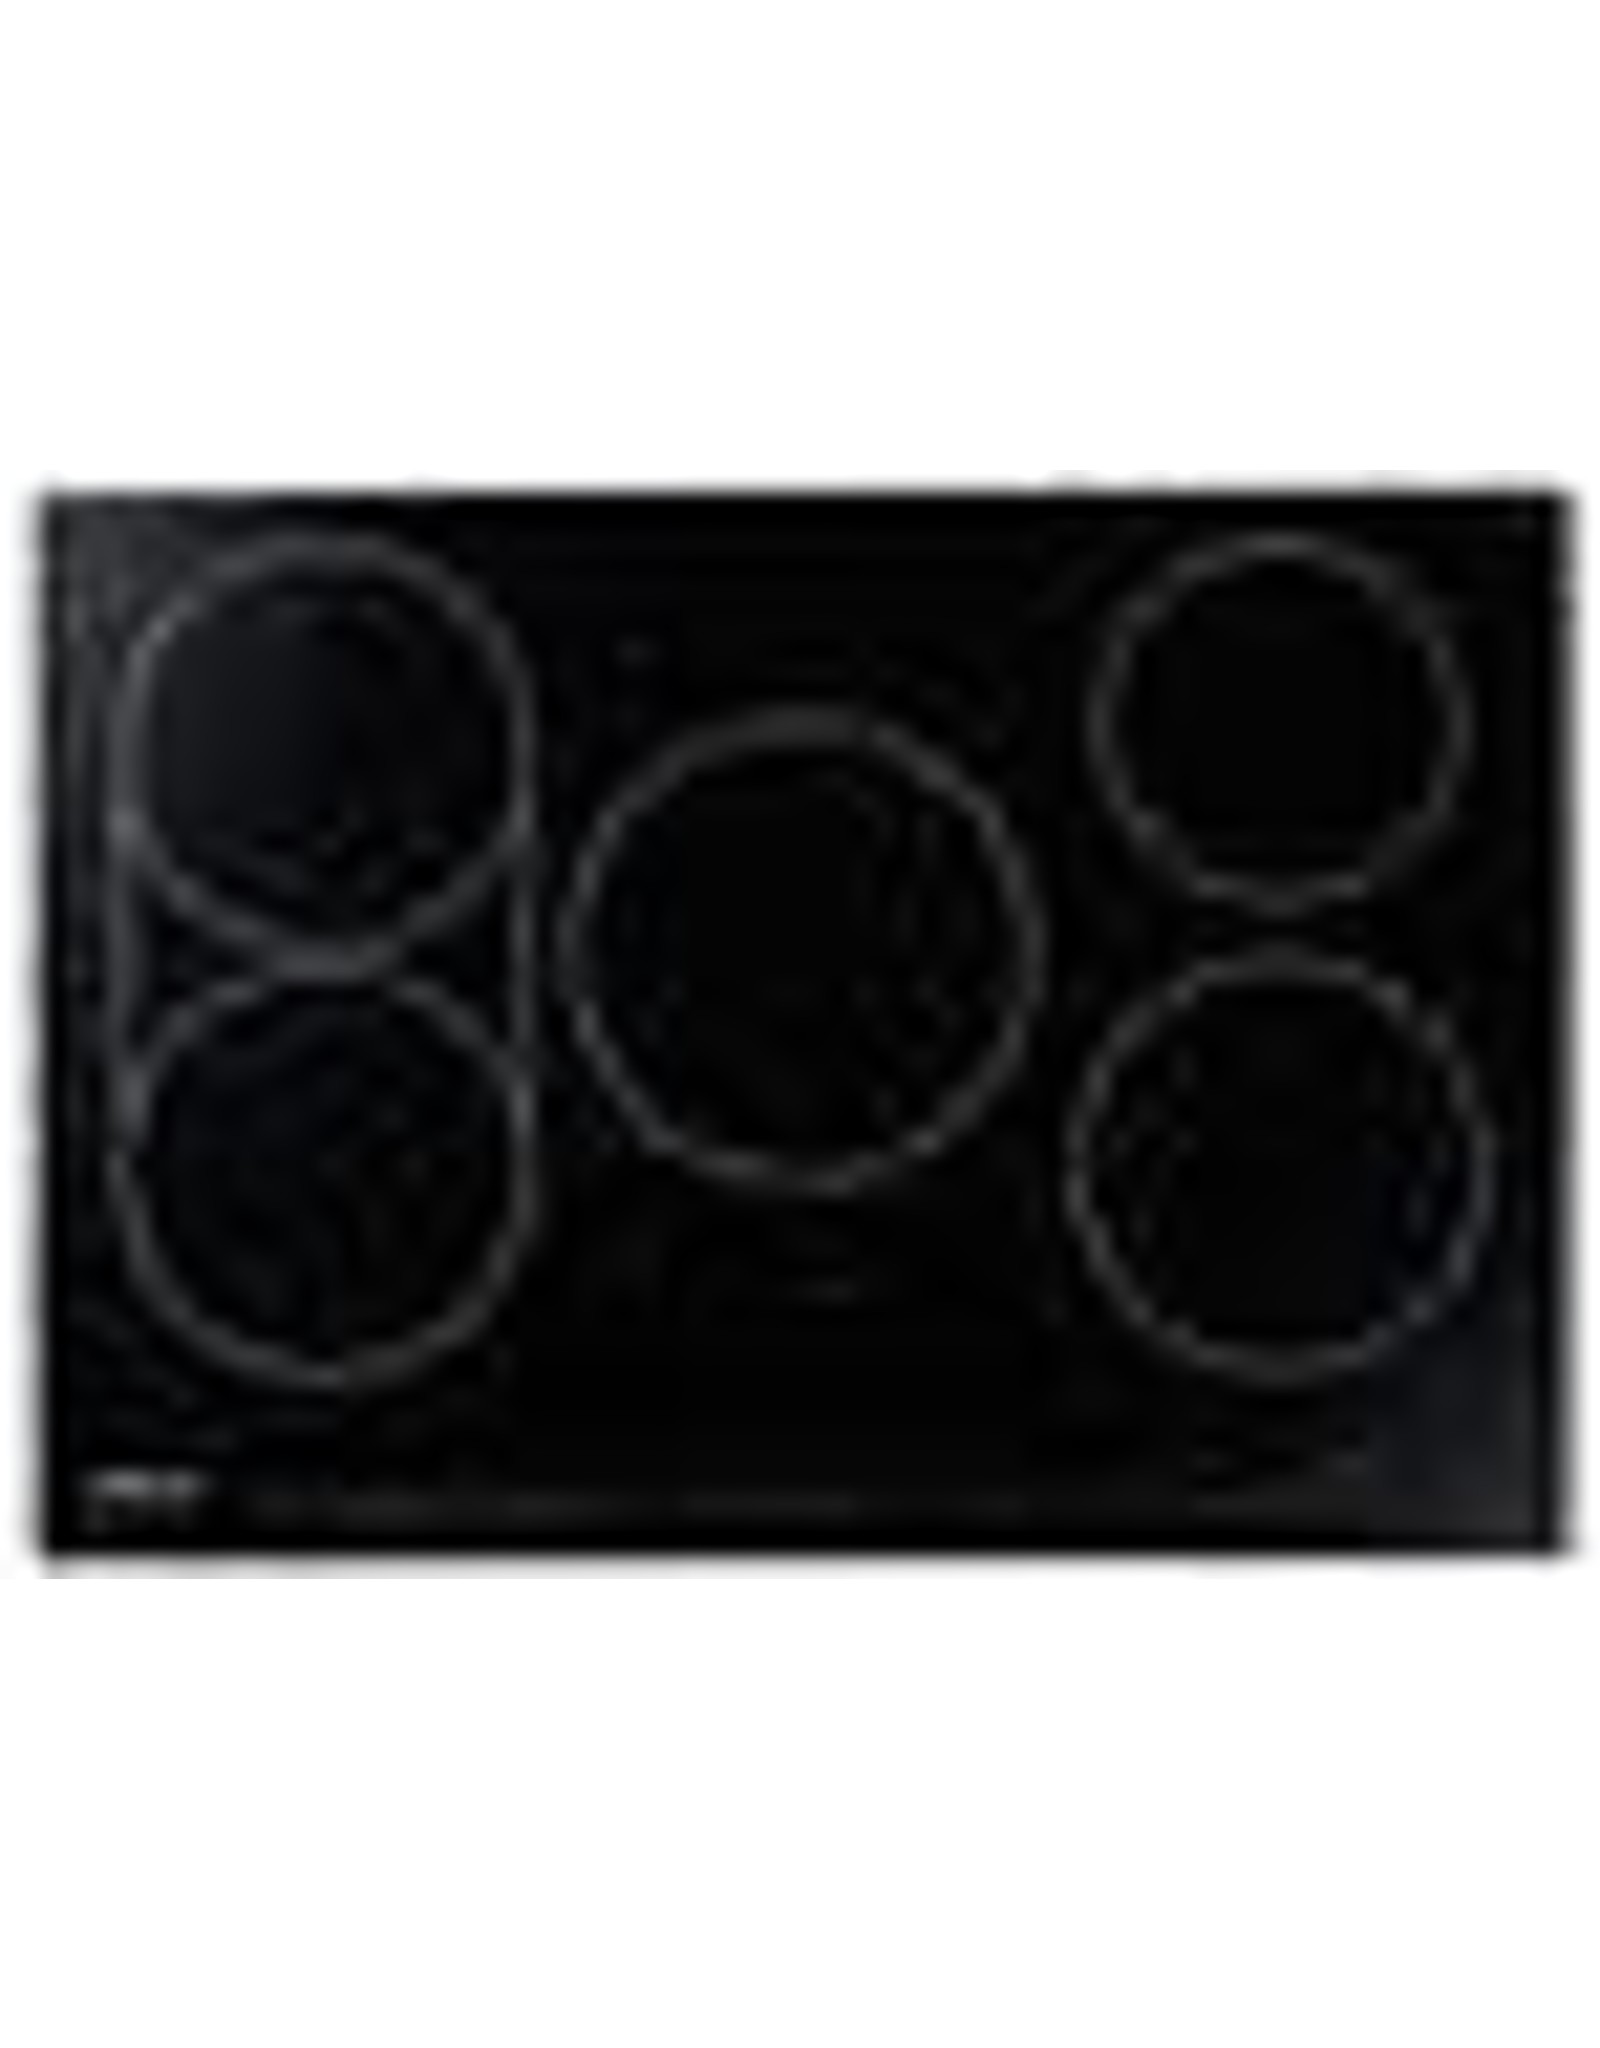 HICT305BG Professional Series 30 Inch Electric Induction Cooktop with 5 Elements, Hot Surface Indicator, Installs Over Oven, Child Lock, Timer, Sensetech Induction Technology in Black